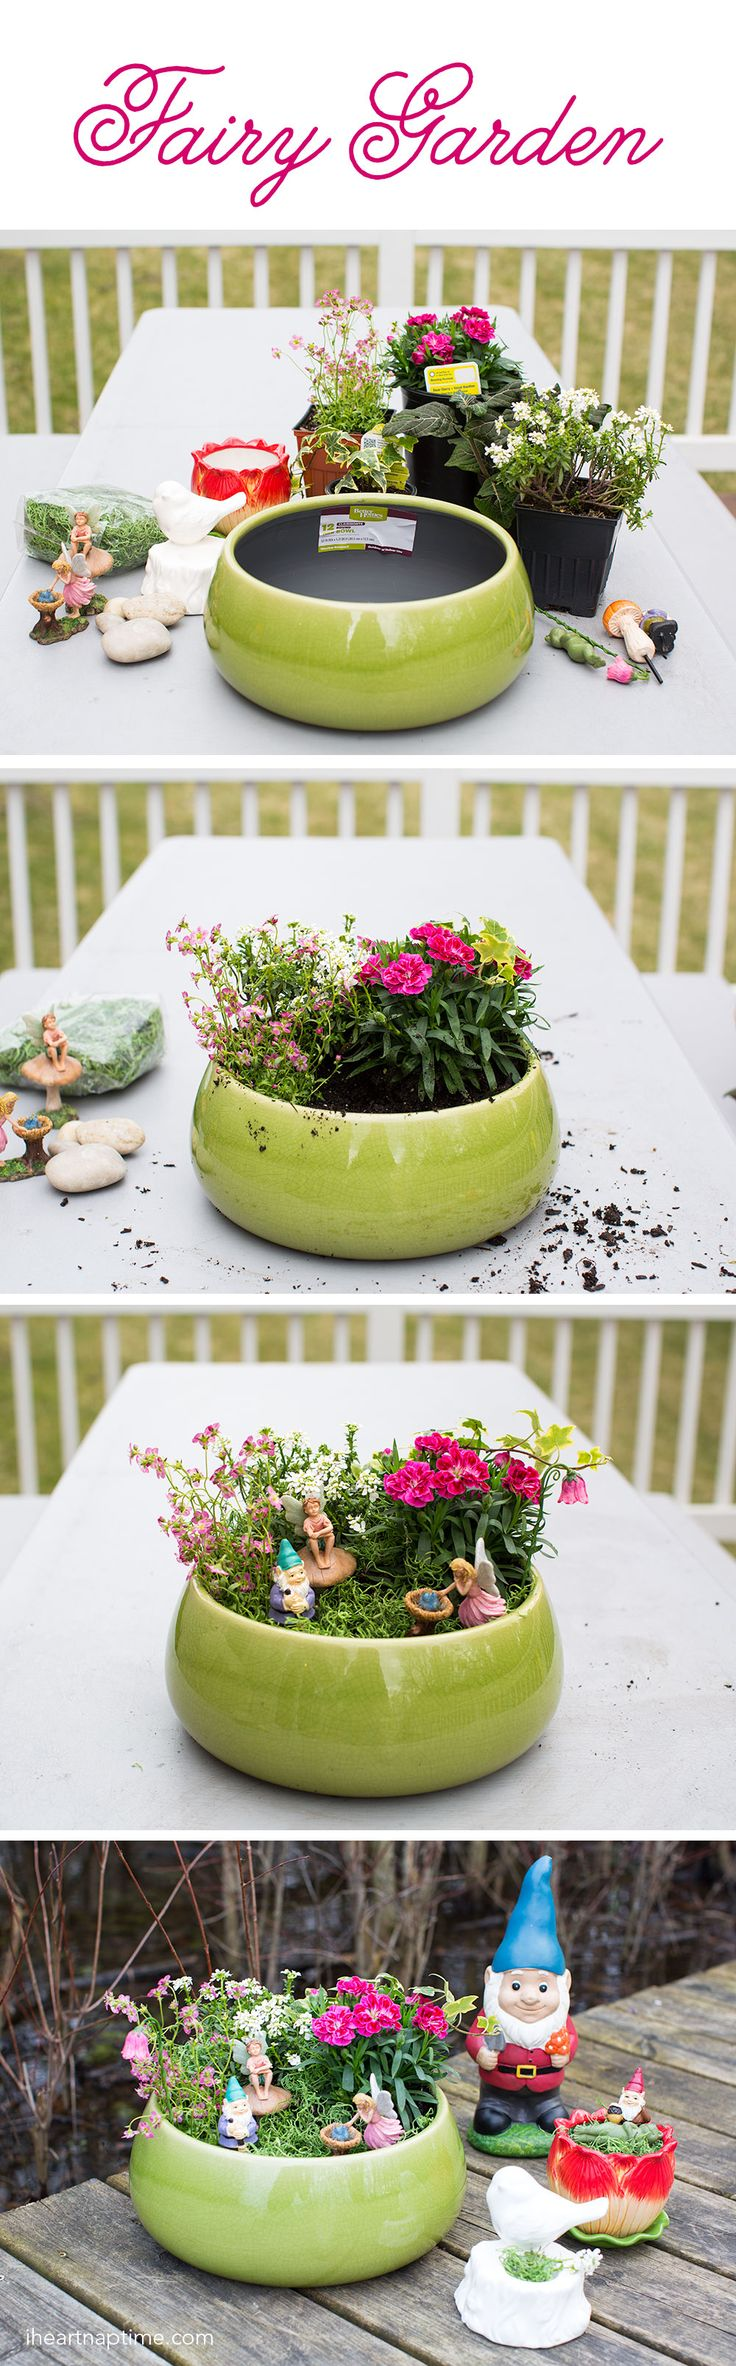 DIY Planter Fairy Garden - for indoor or outdoor use that the kids can help create! Such a fun way to add a little magic to your yard. #BHGLiveBetter